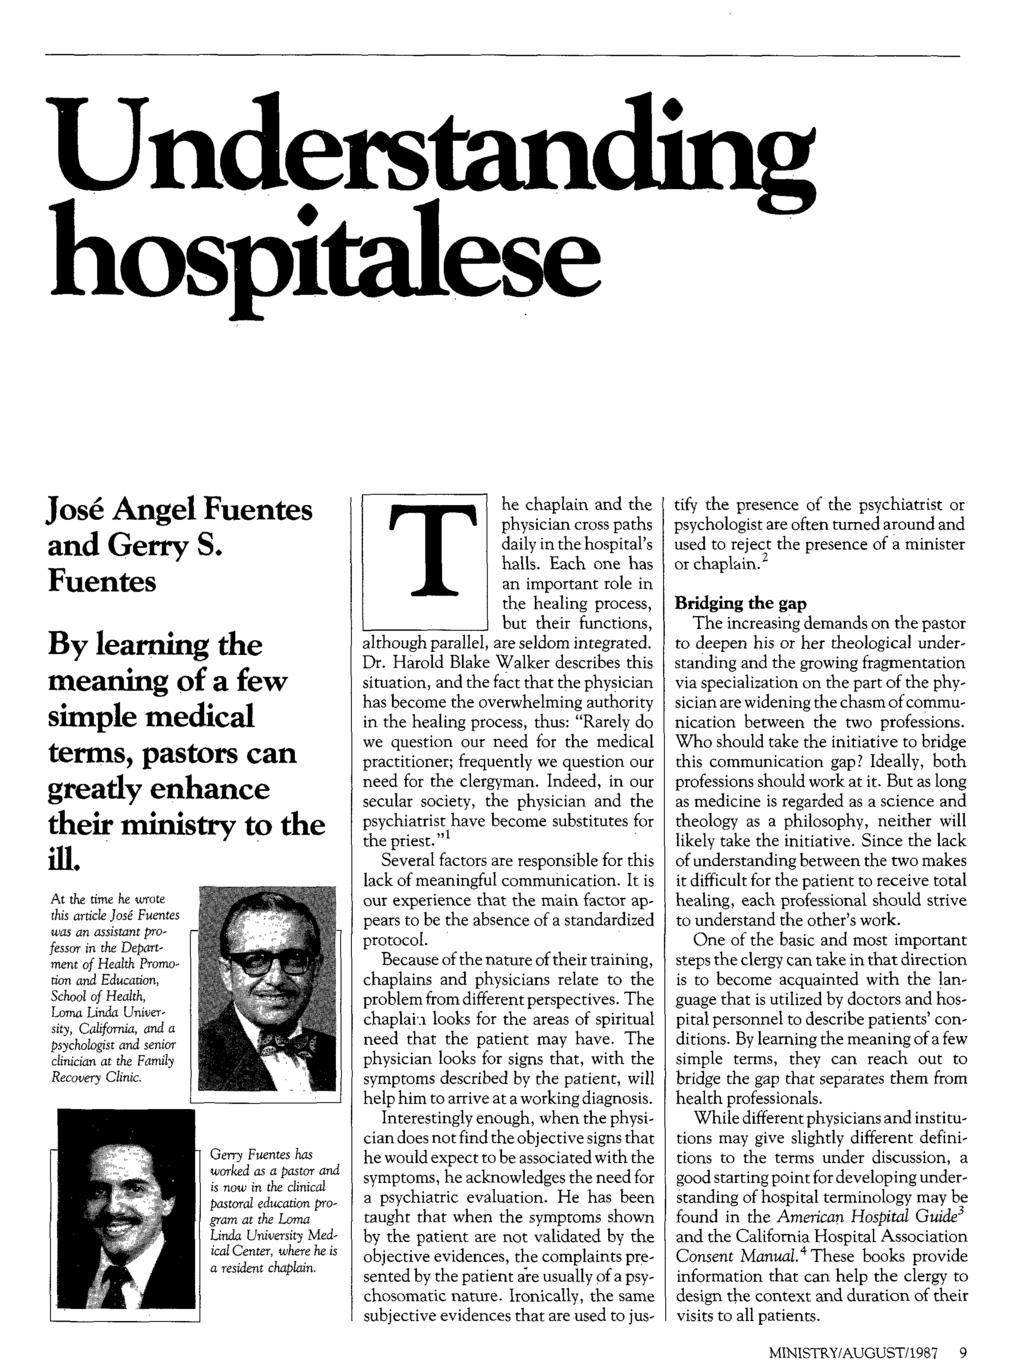 Understanding hospitalese Jose Angel Fuentes and Gerry S.